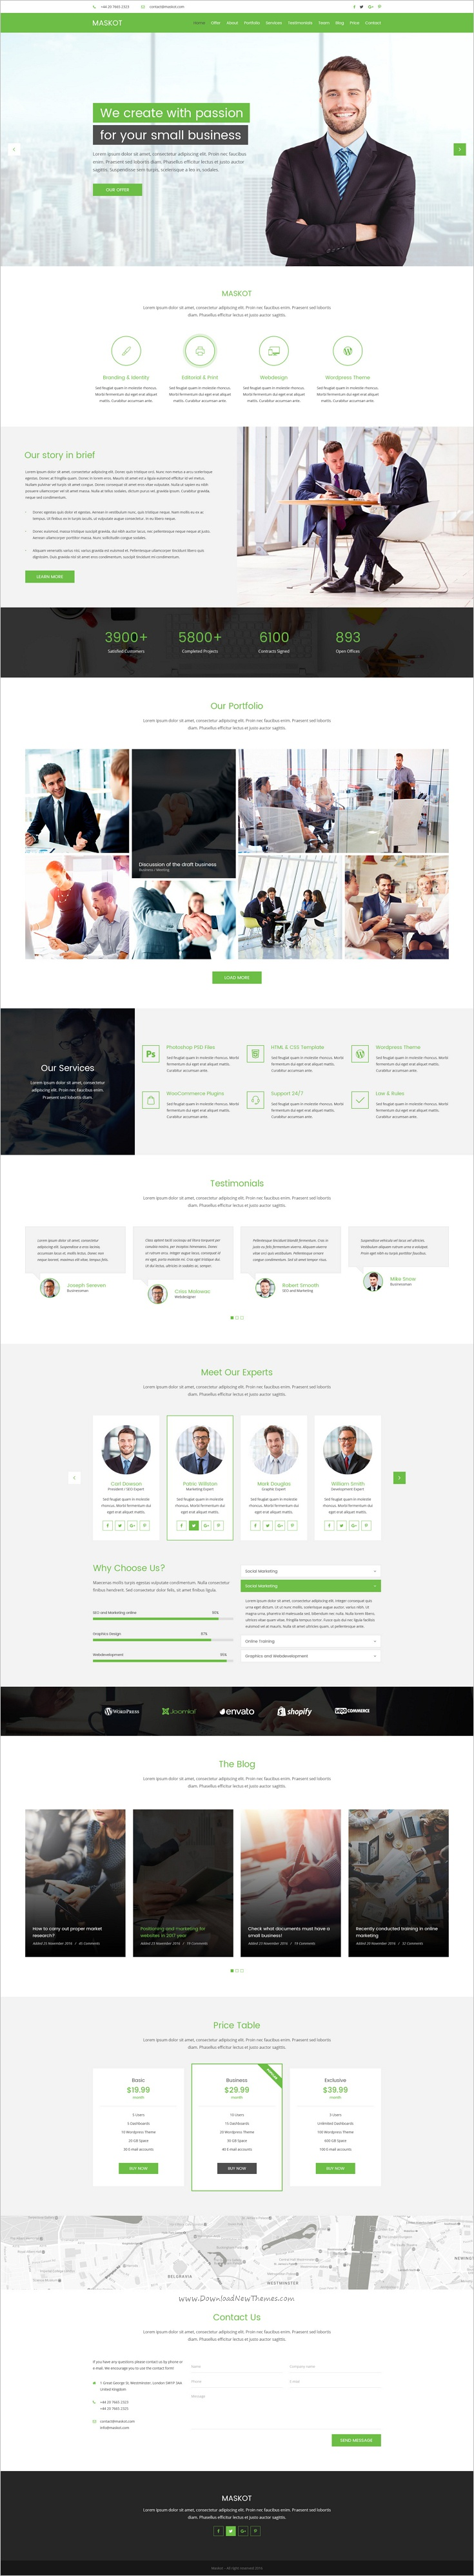 Maskot – Smart Business PSD Template | Psd templates, Template and ...